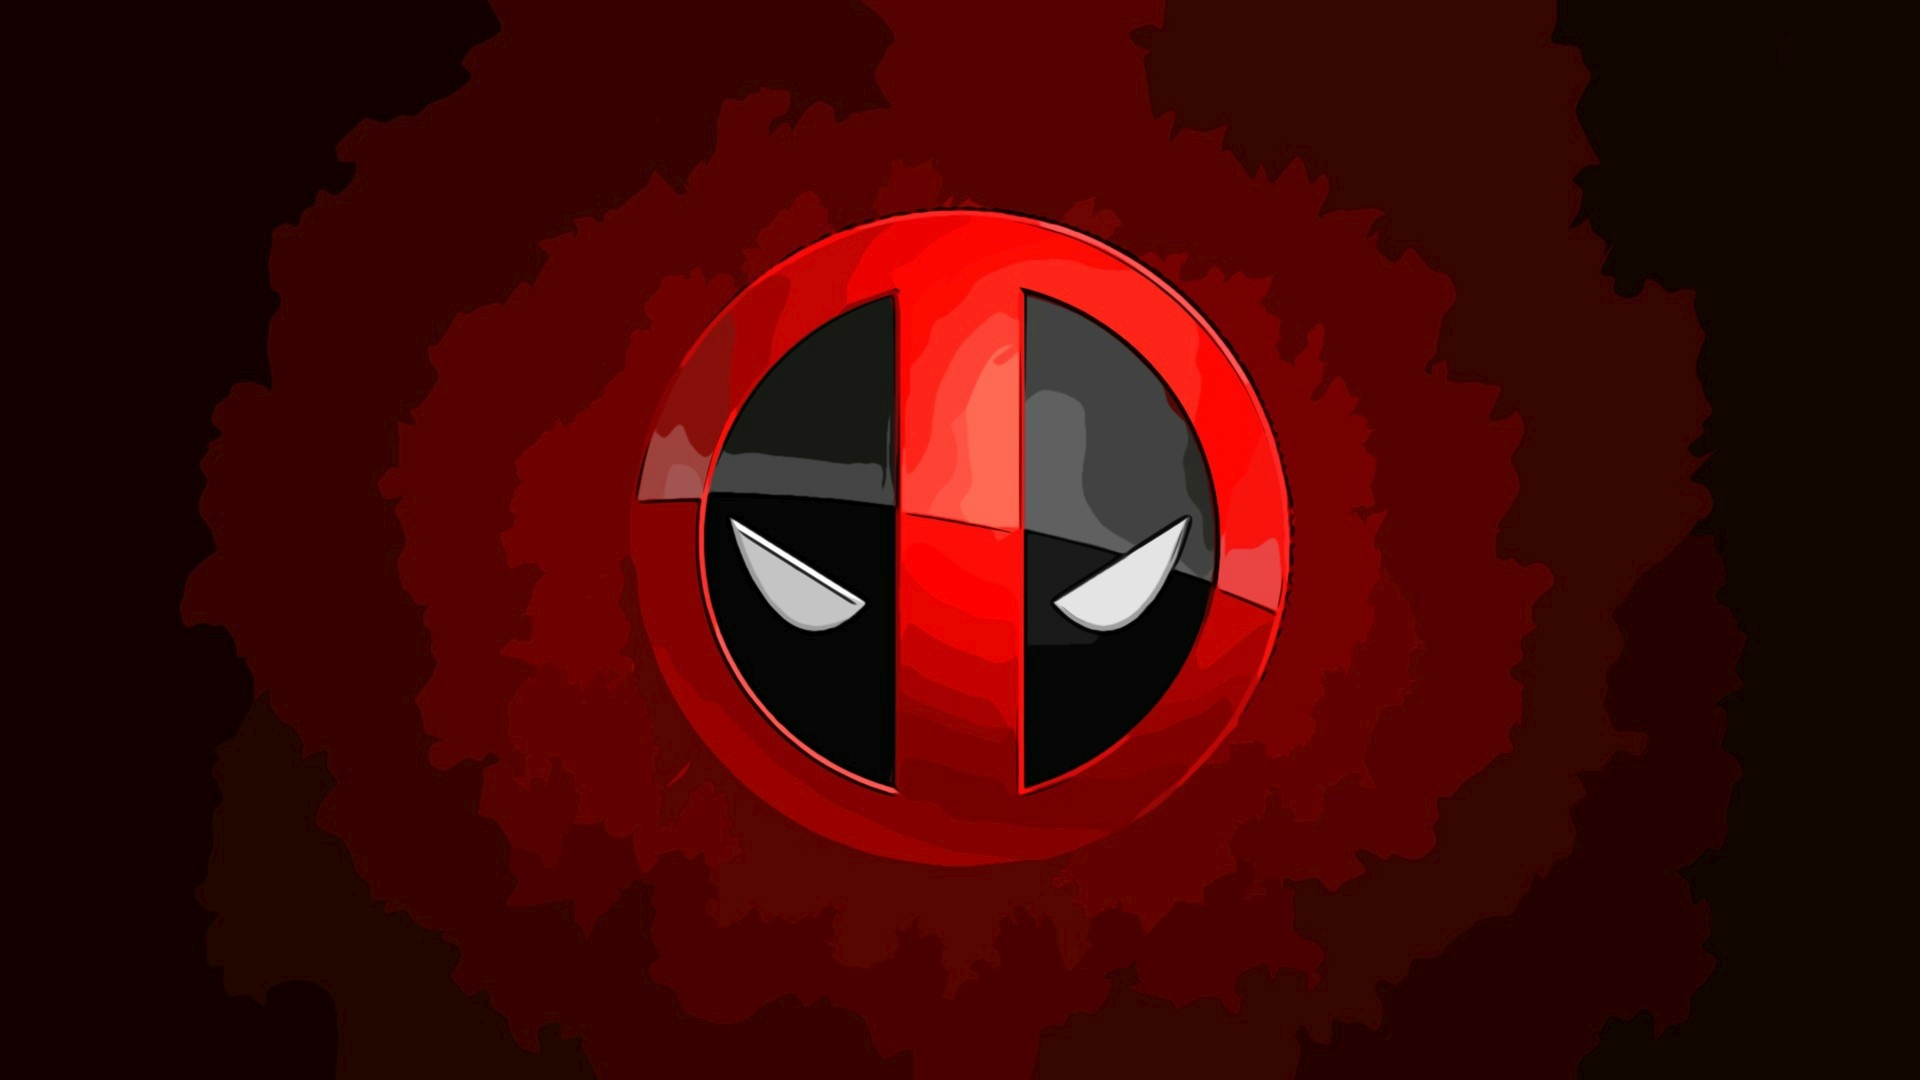 Deadpool Wallpaper For Iphone X 死侍 Full Hd 壁纸 And 背景 1920x1080 Id 671520